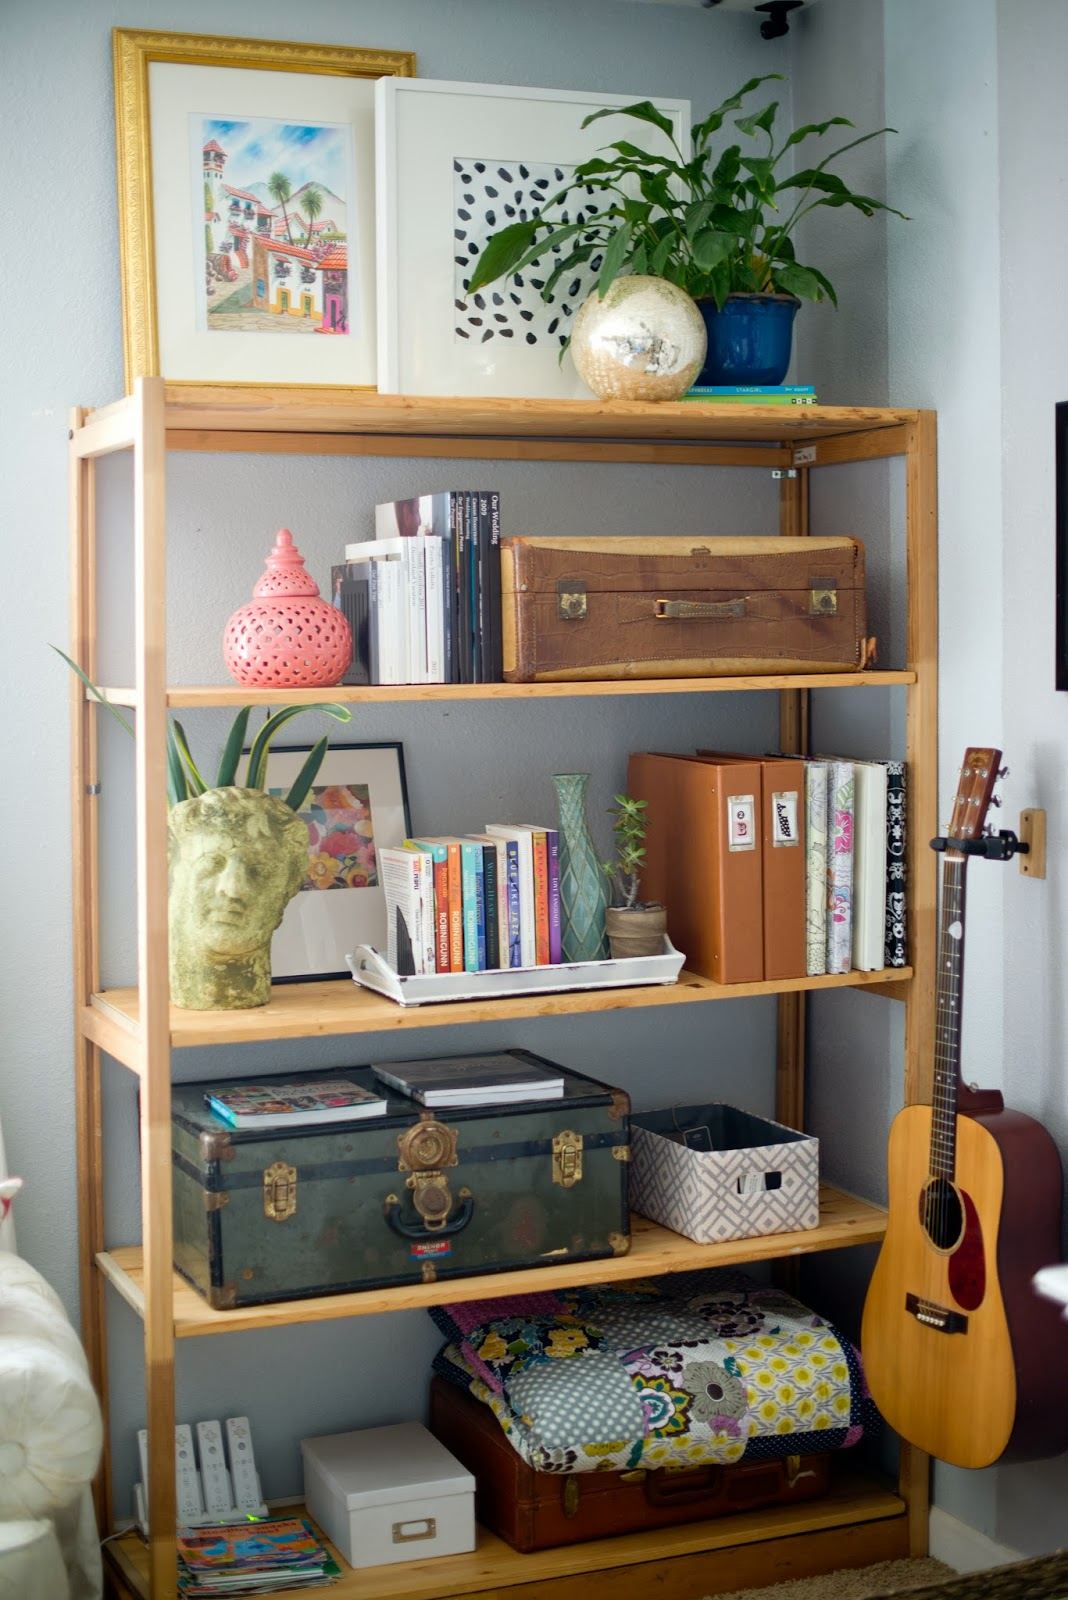 Living Room Shelf Ideas: Domestic Fashionista: Decorating Around The TV And A New Shelf